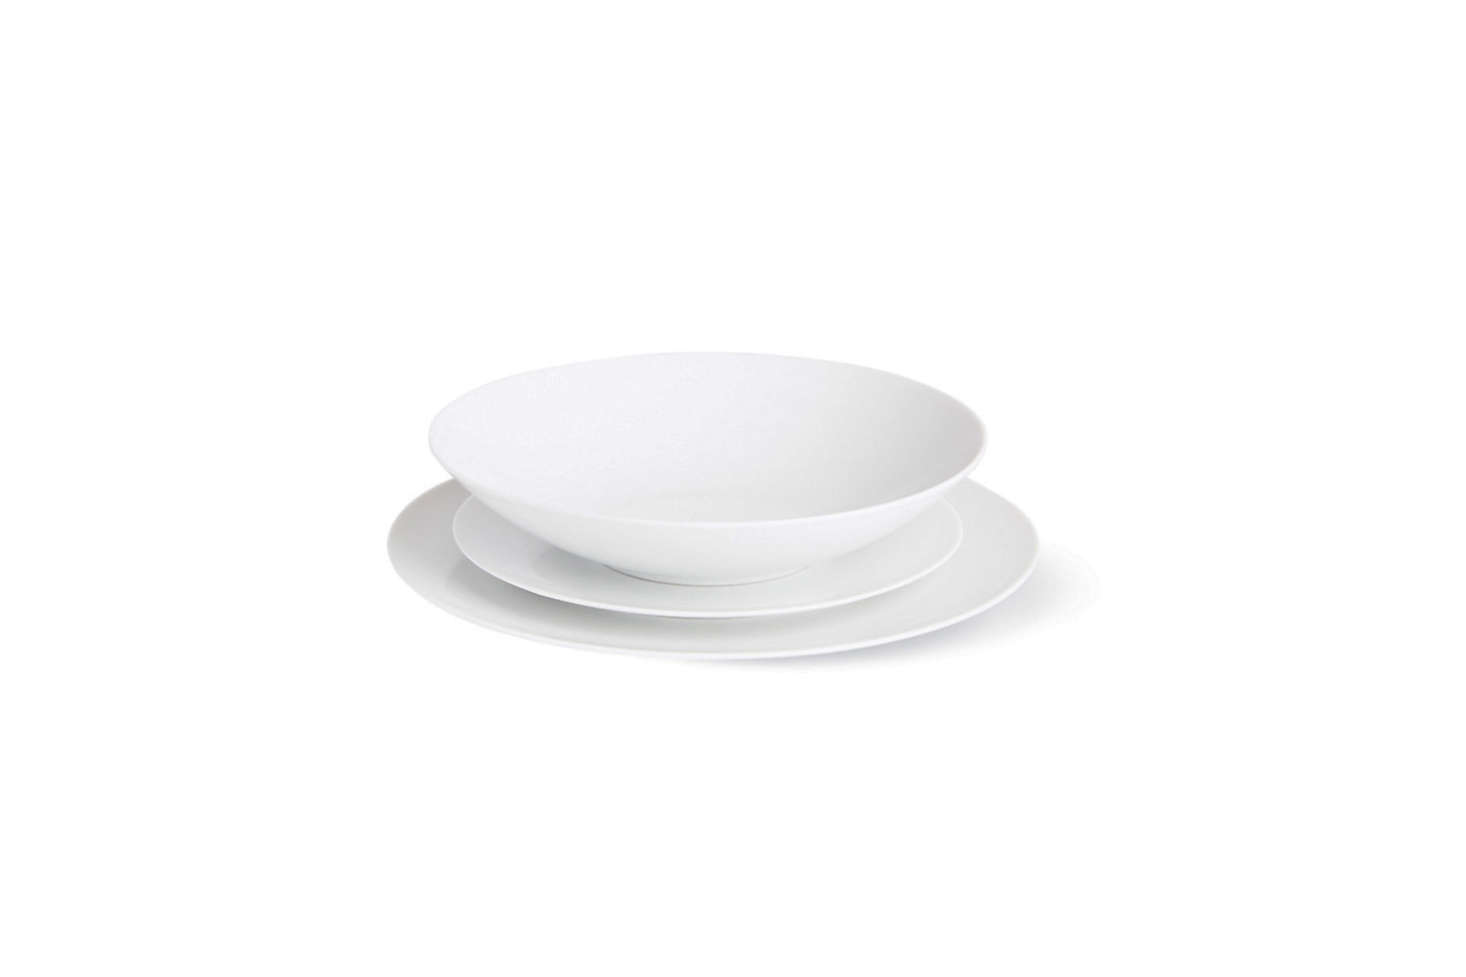 In 1967, Bauhaus architect Walter Gropius designed a tea set in simple, wear-resistant porcelain for Rosenthal. Two years later, the set was expanded into a full dinnerware line from Gropius's drawings called TAC 02 Dinnerware. It is minimal, geometric, and made in Germany: Bauhaus in every way. The 18-piece set is $595 at Design Within Reach.